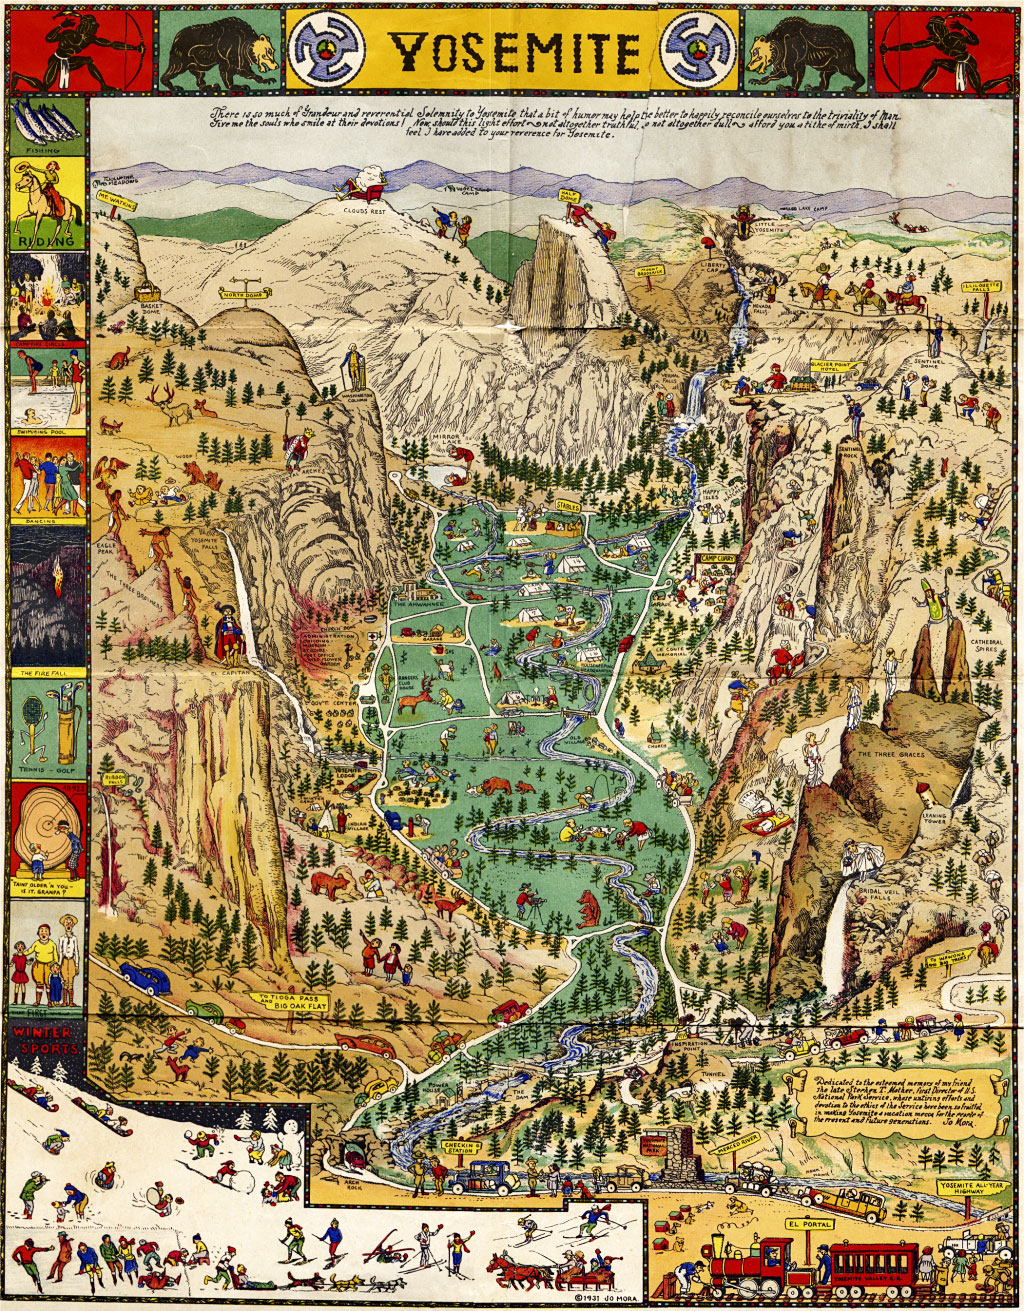 This map of the Yosemite Valley illustrated